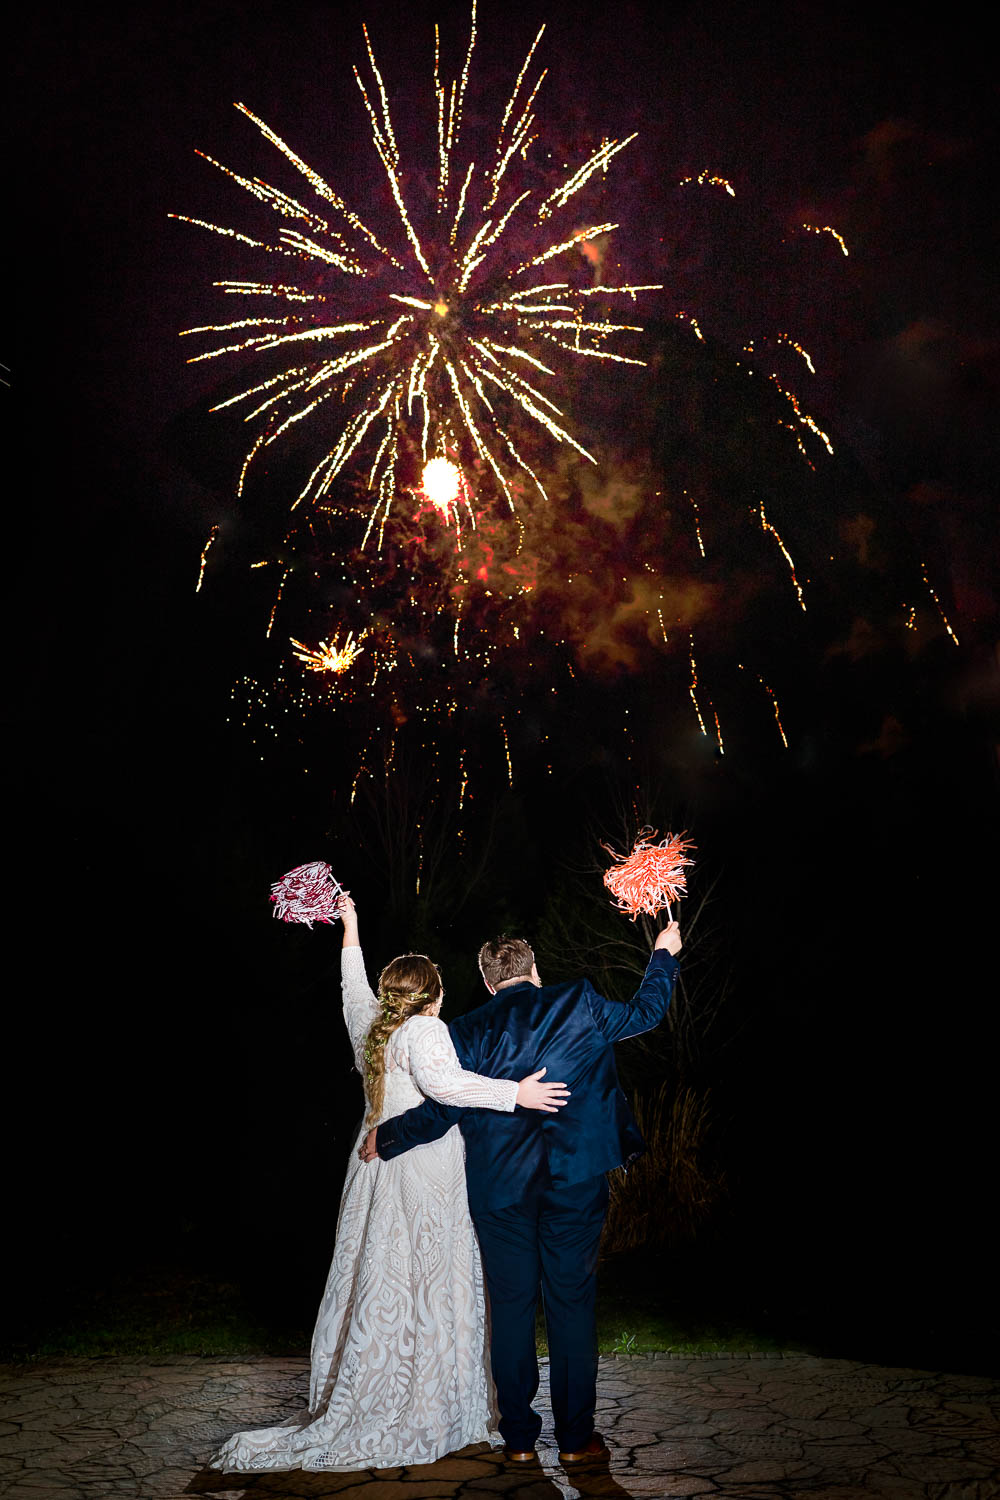 wedding fireworks at night